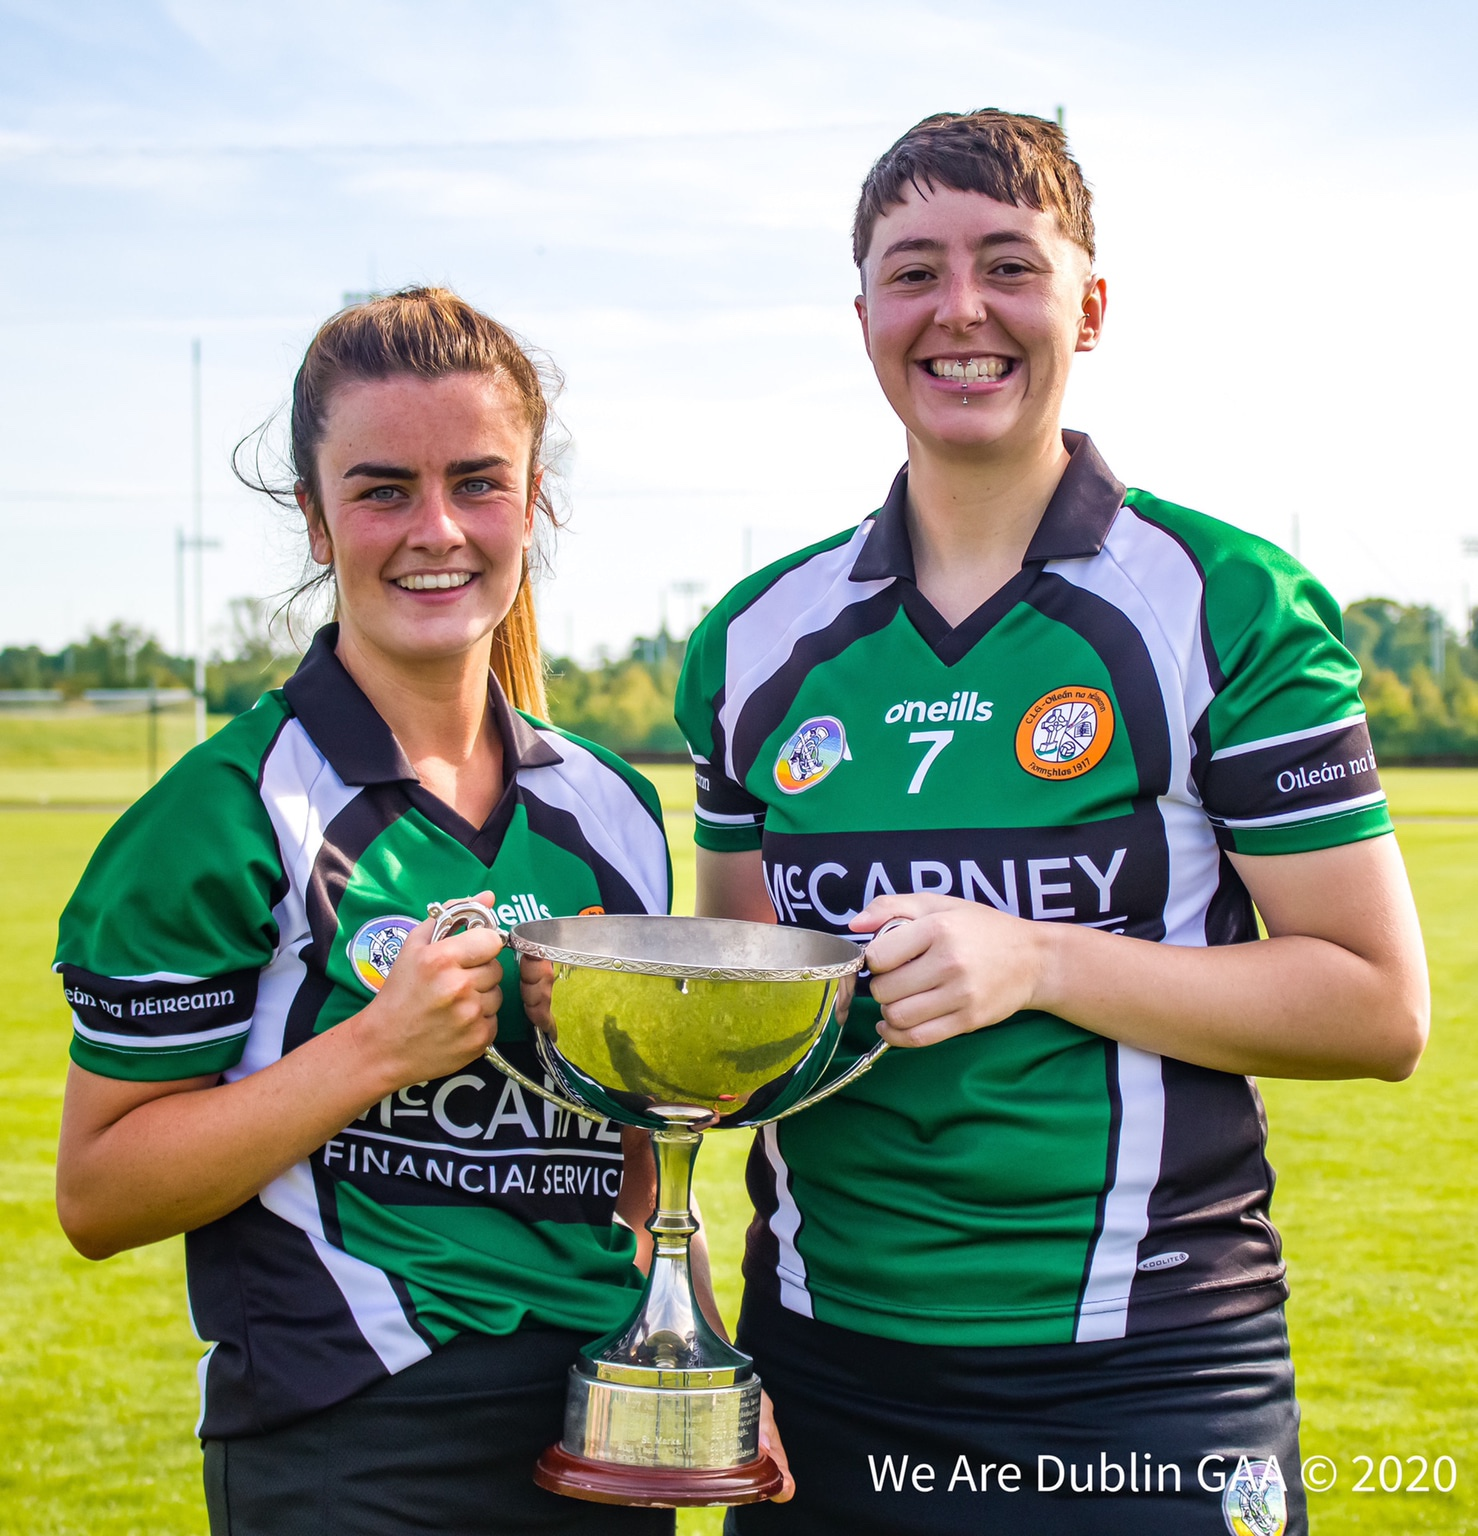 Erins Isle joint captains hold the Intermediate 1 title after defeating Naomh Peregrine in the club championship camogie final.